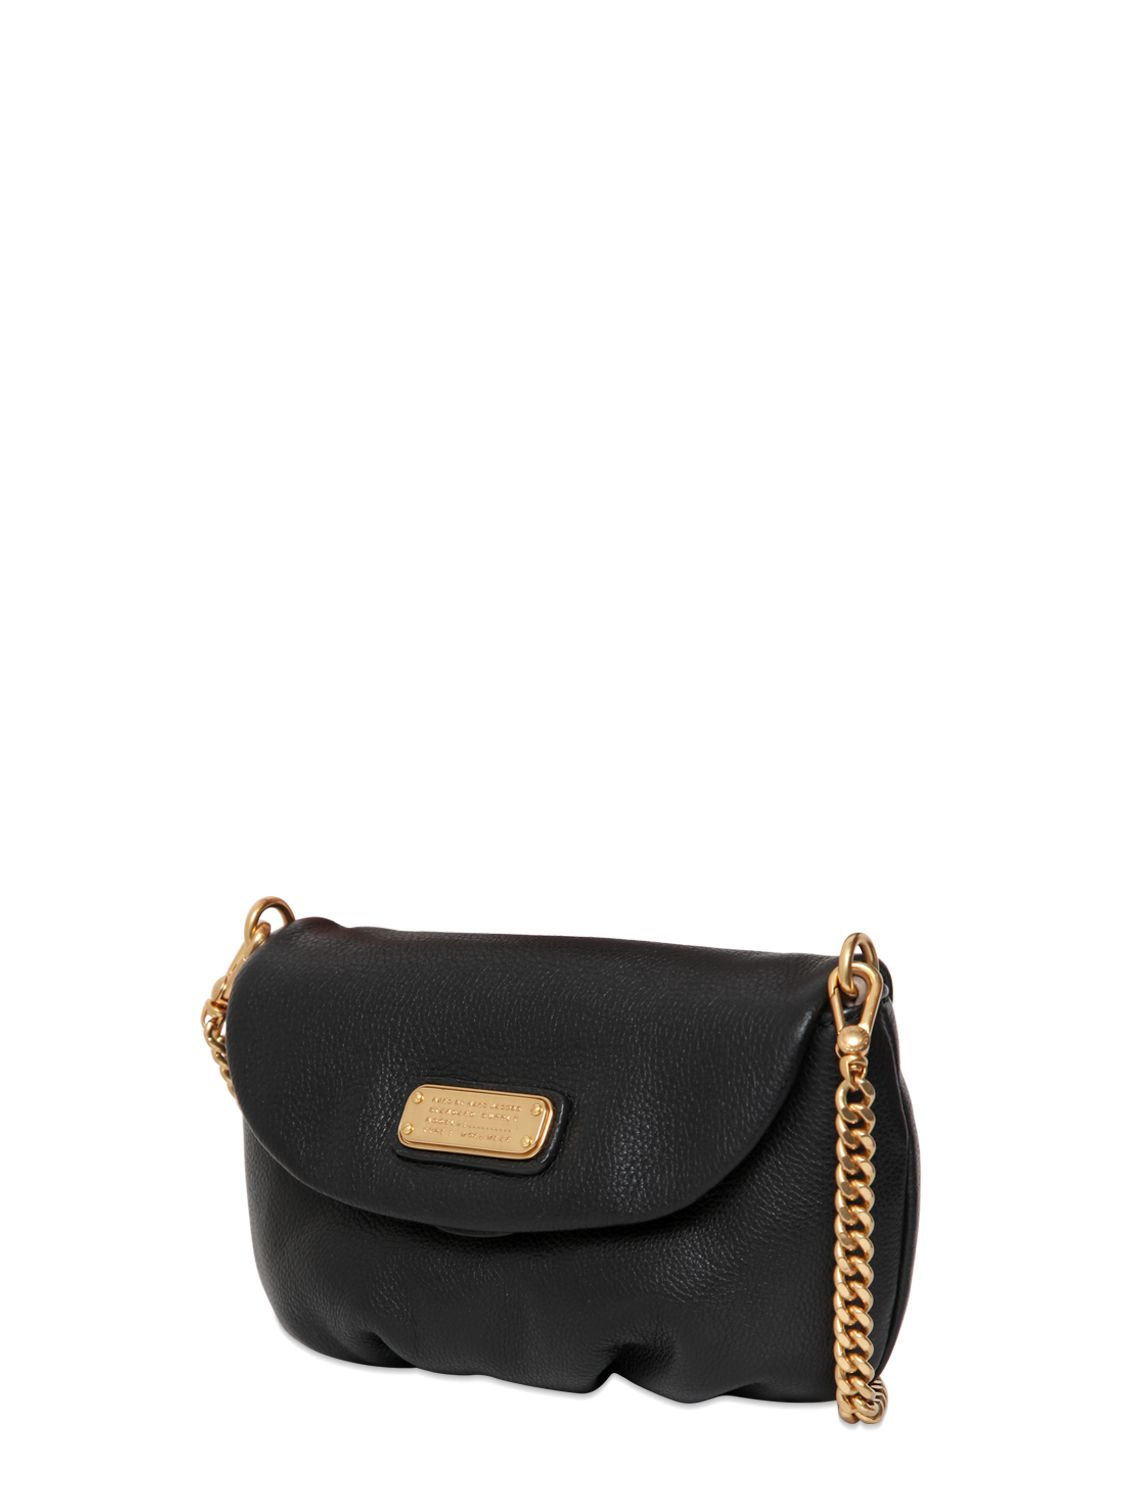 Marc By Marc Jacobs Washed Up Zip Crossbody Bag in Black